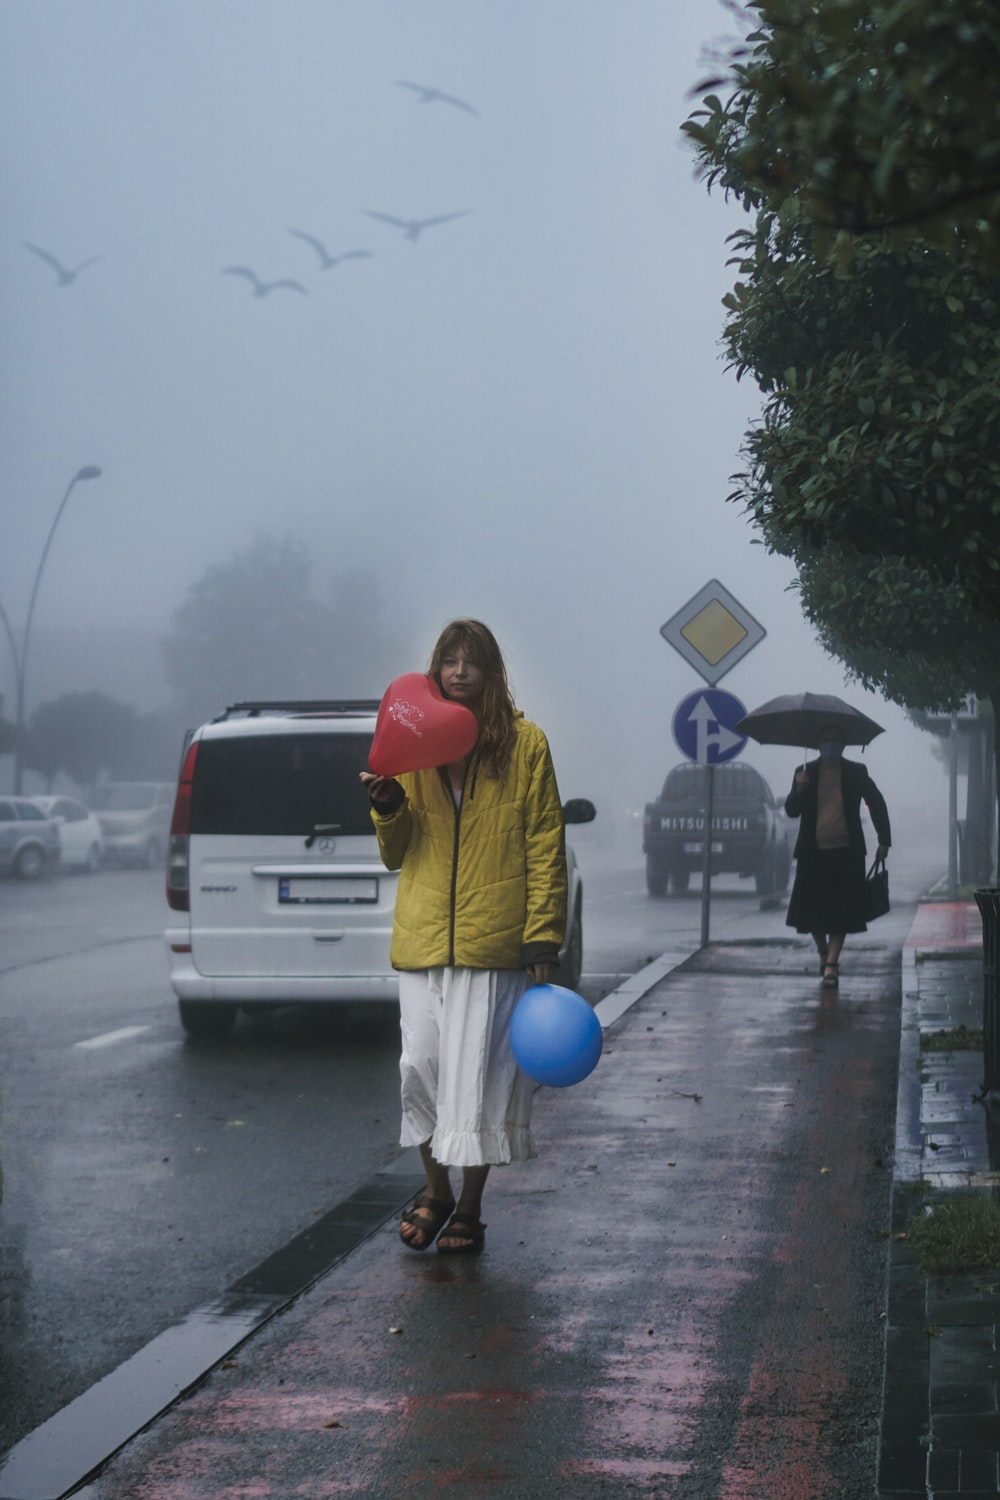 woman in yellow jacket holding blue balloon